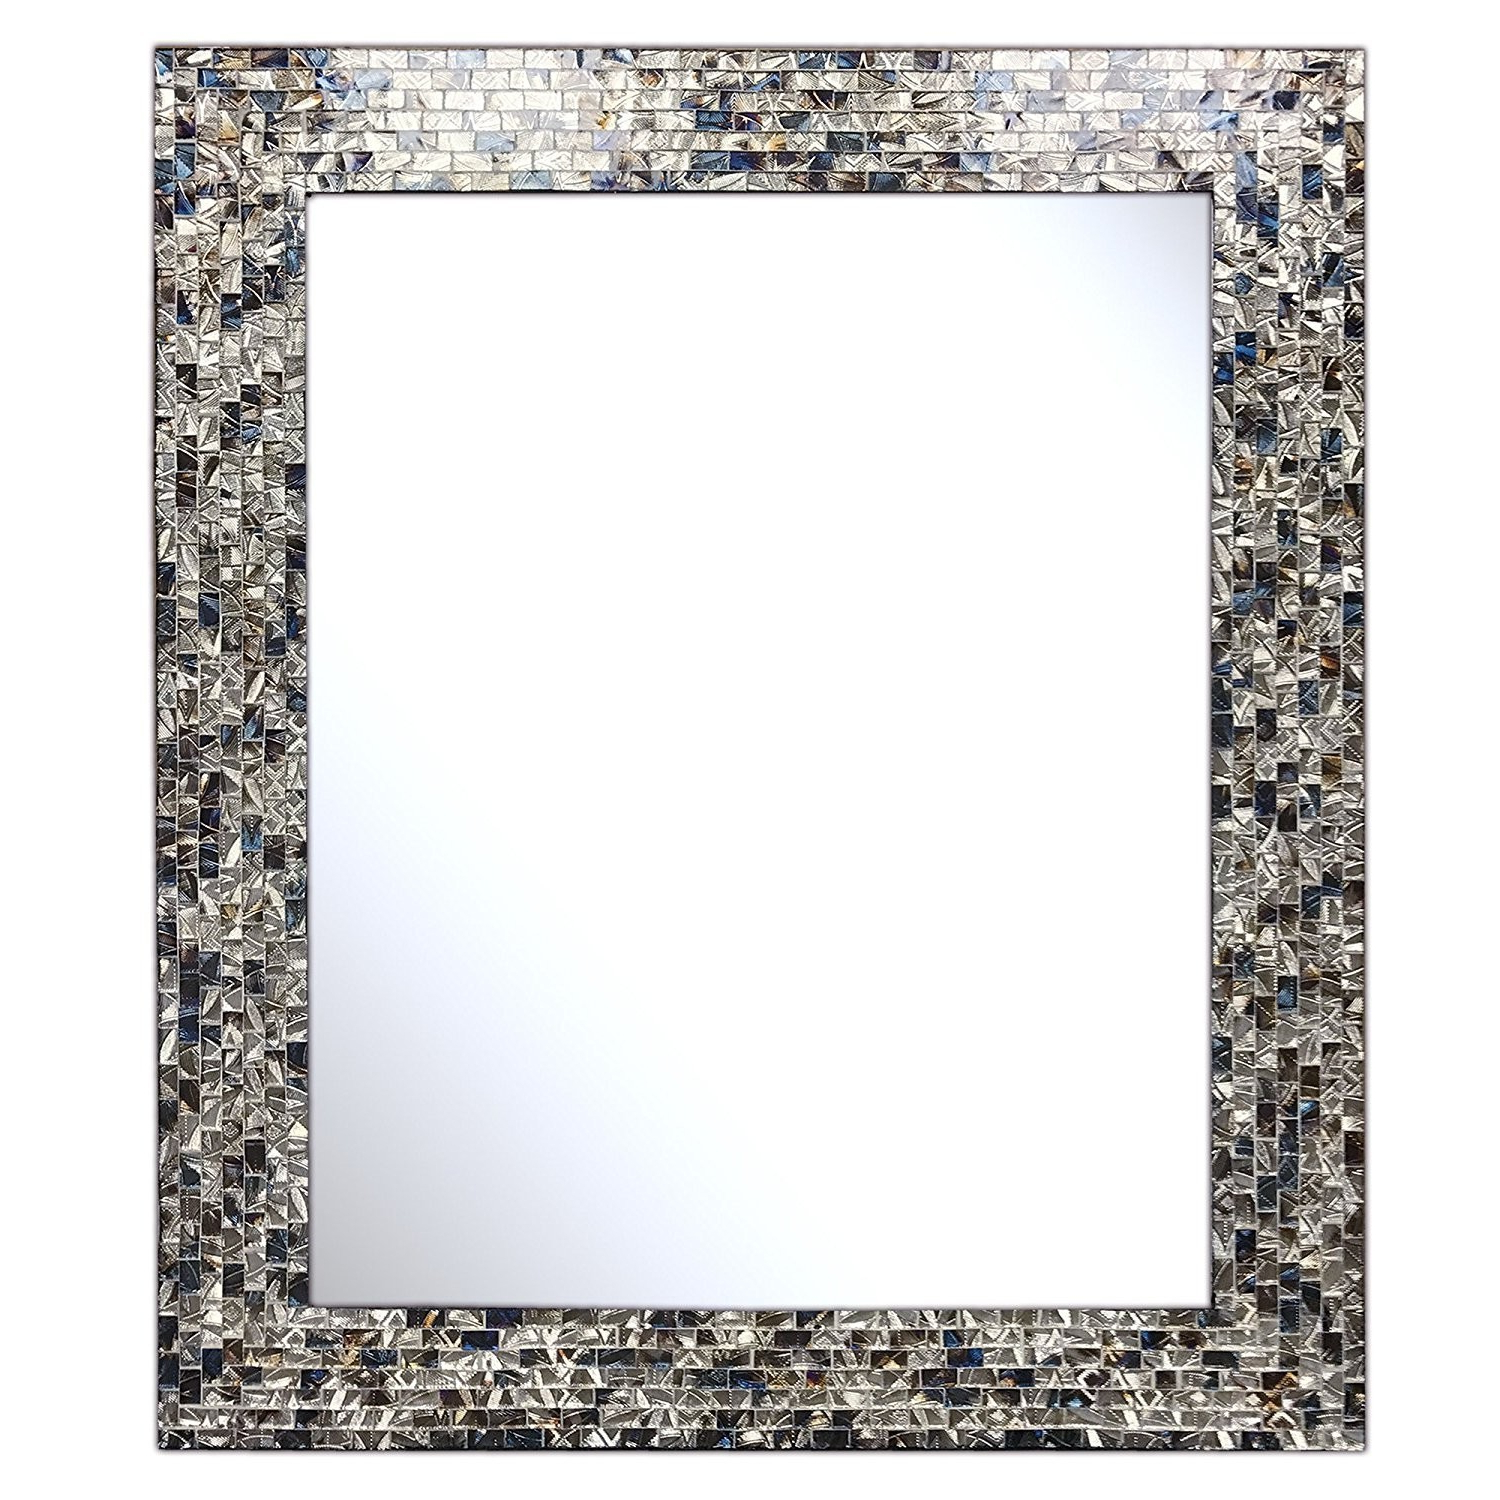 "Popular Multi Colored & Silver, Luxe Mosaic Glass Framed Wall Mirror, Decorative Embossed Rectangular Vanity / Accent Mirror (30"" X 24"") Inside Decorative Framed Wall Mirrors (View 6 of 20)"